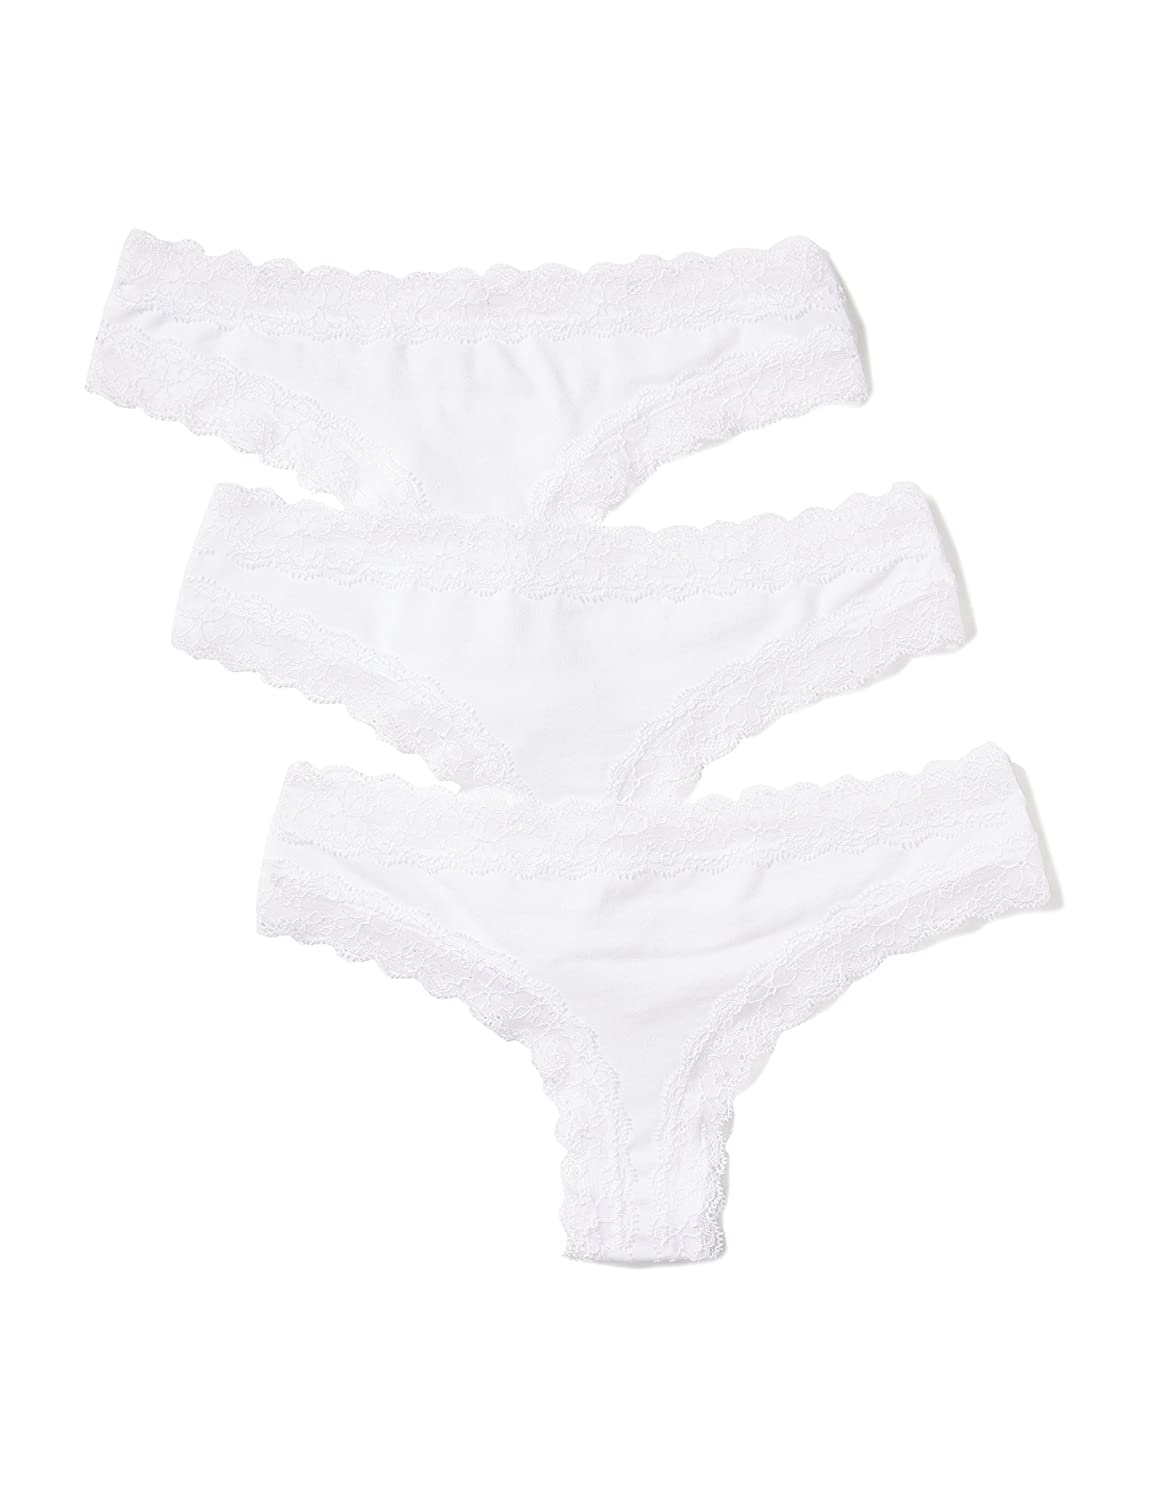 Amazon Brand - Iris & Lilly Women's Cotton Thong with Lace, Pack of 3